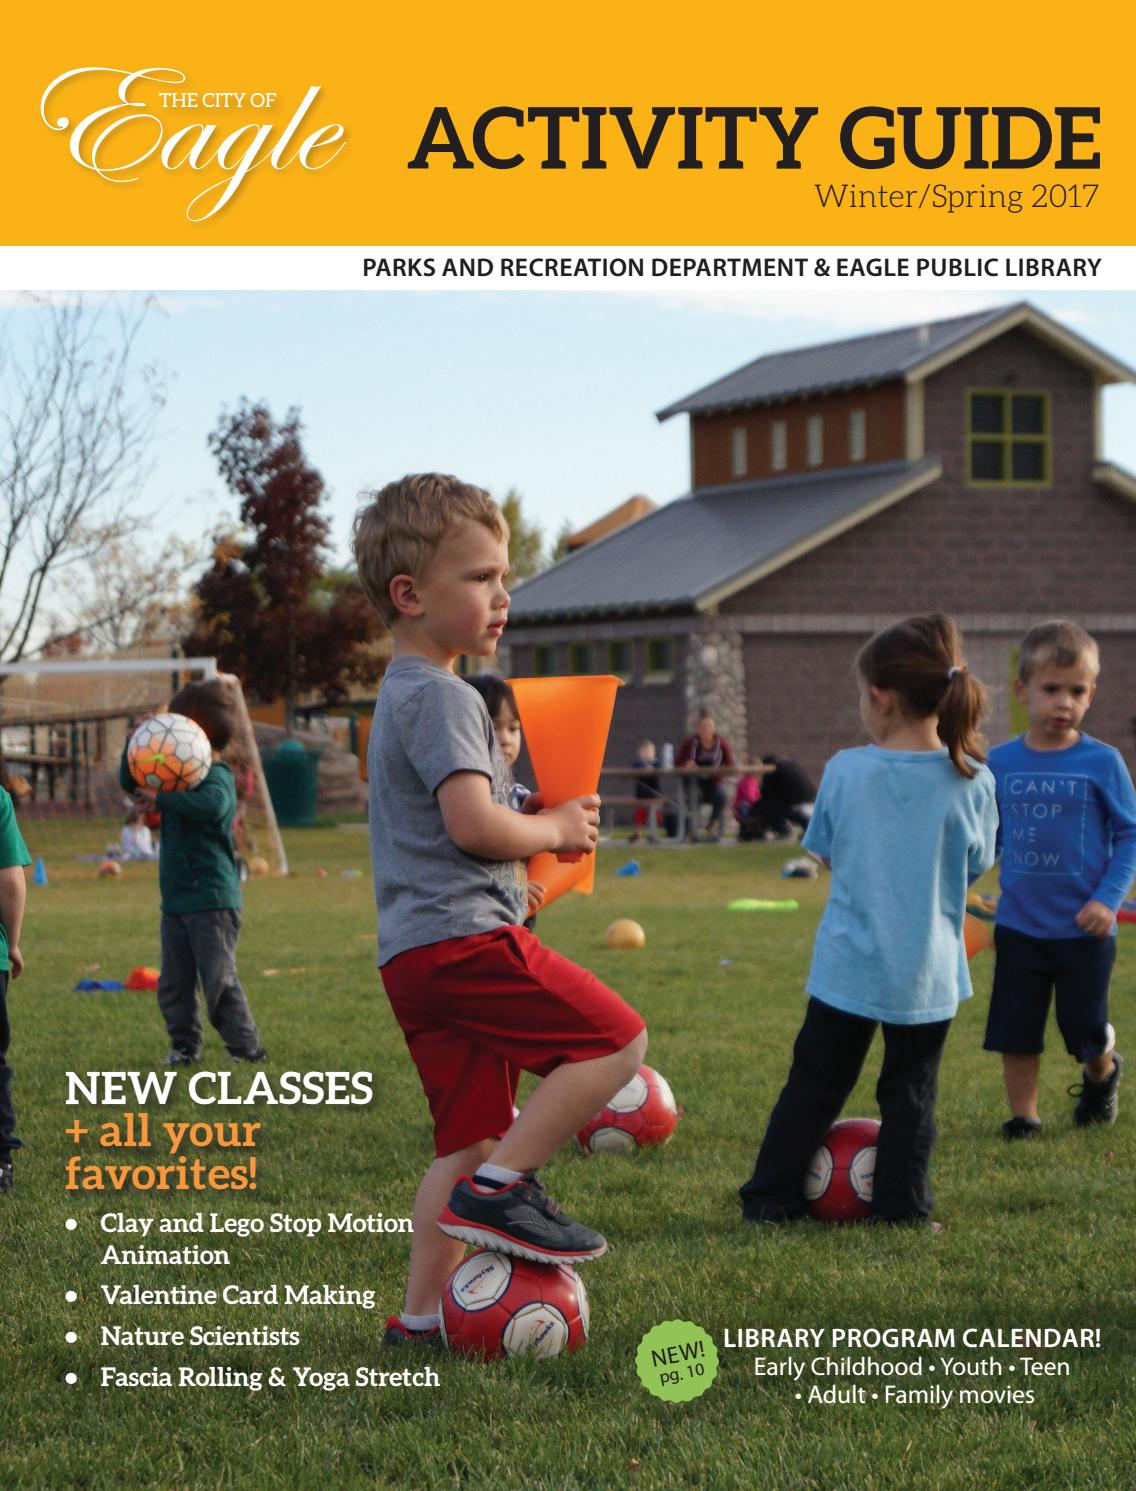 Eagle Parks & Recreation 2017 Winter Activity Guide by City of Eagle Parks,  Pathways, Recreation - issuu